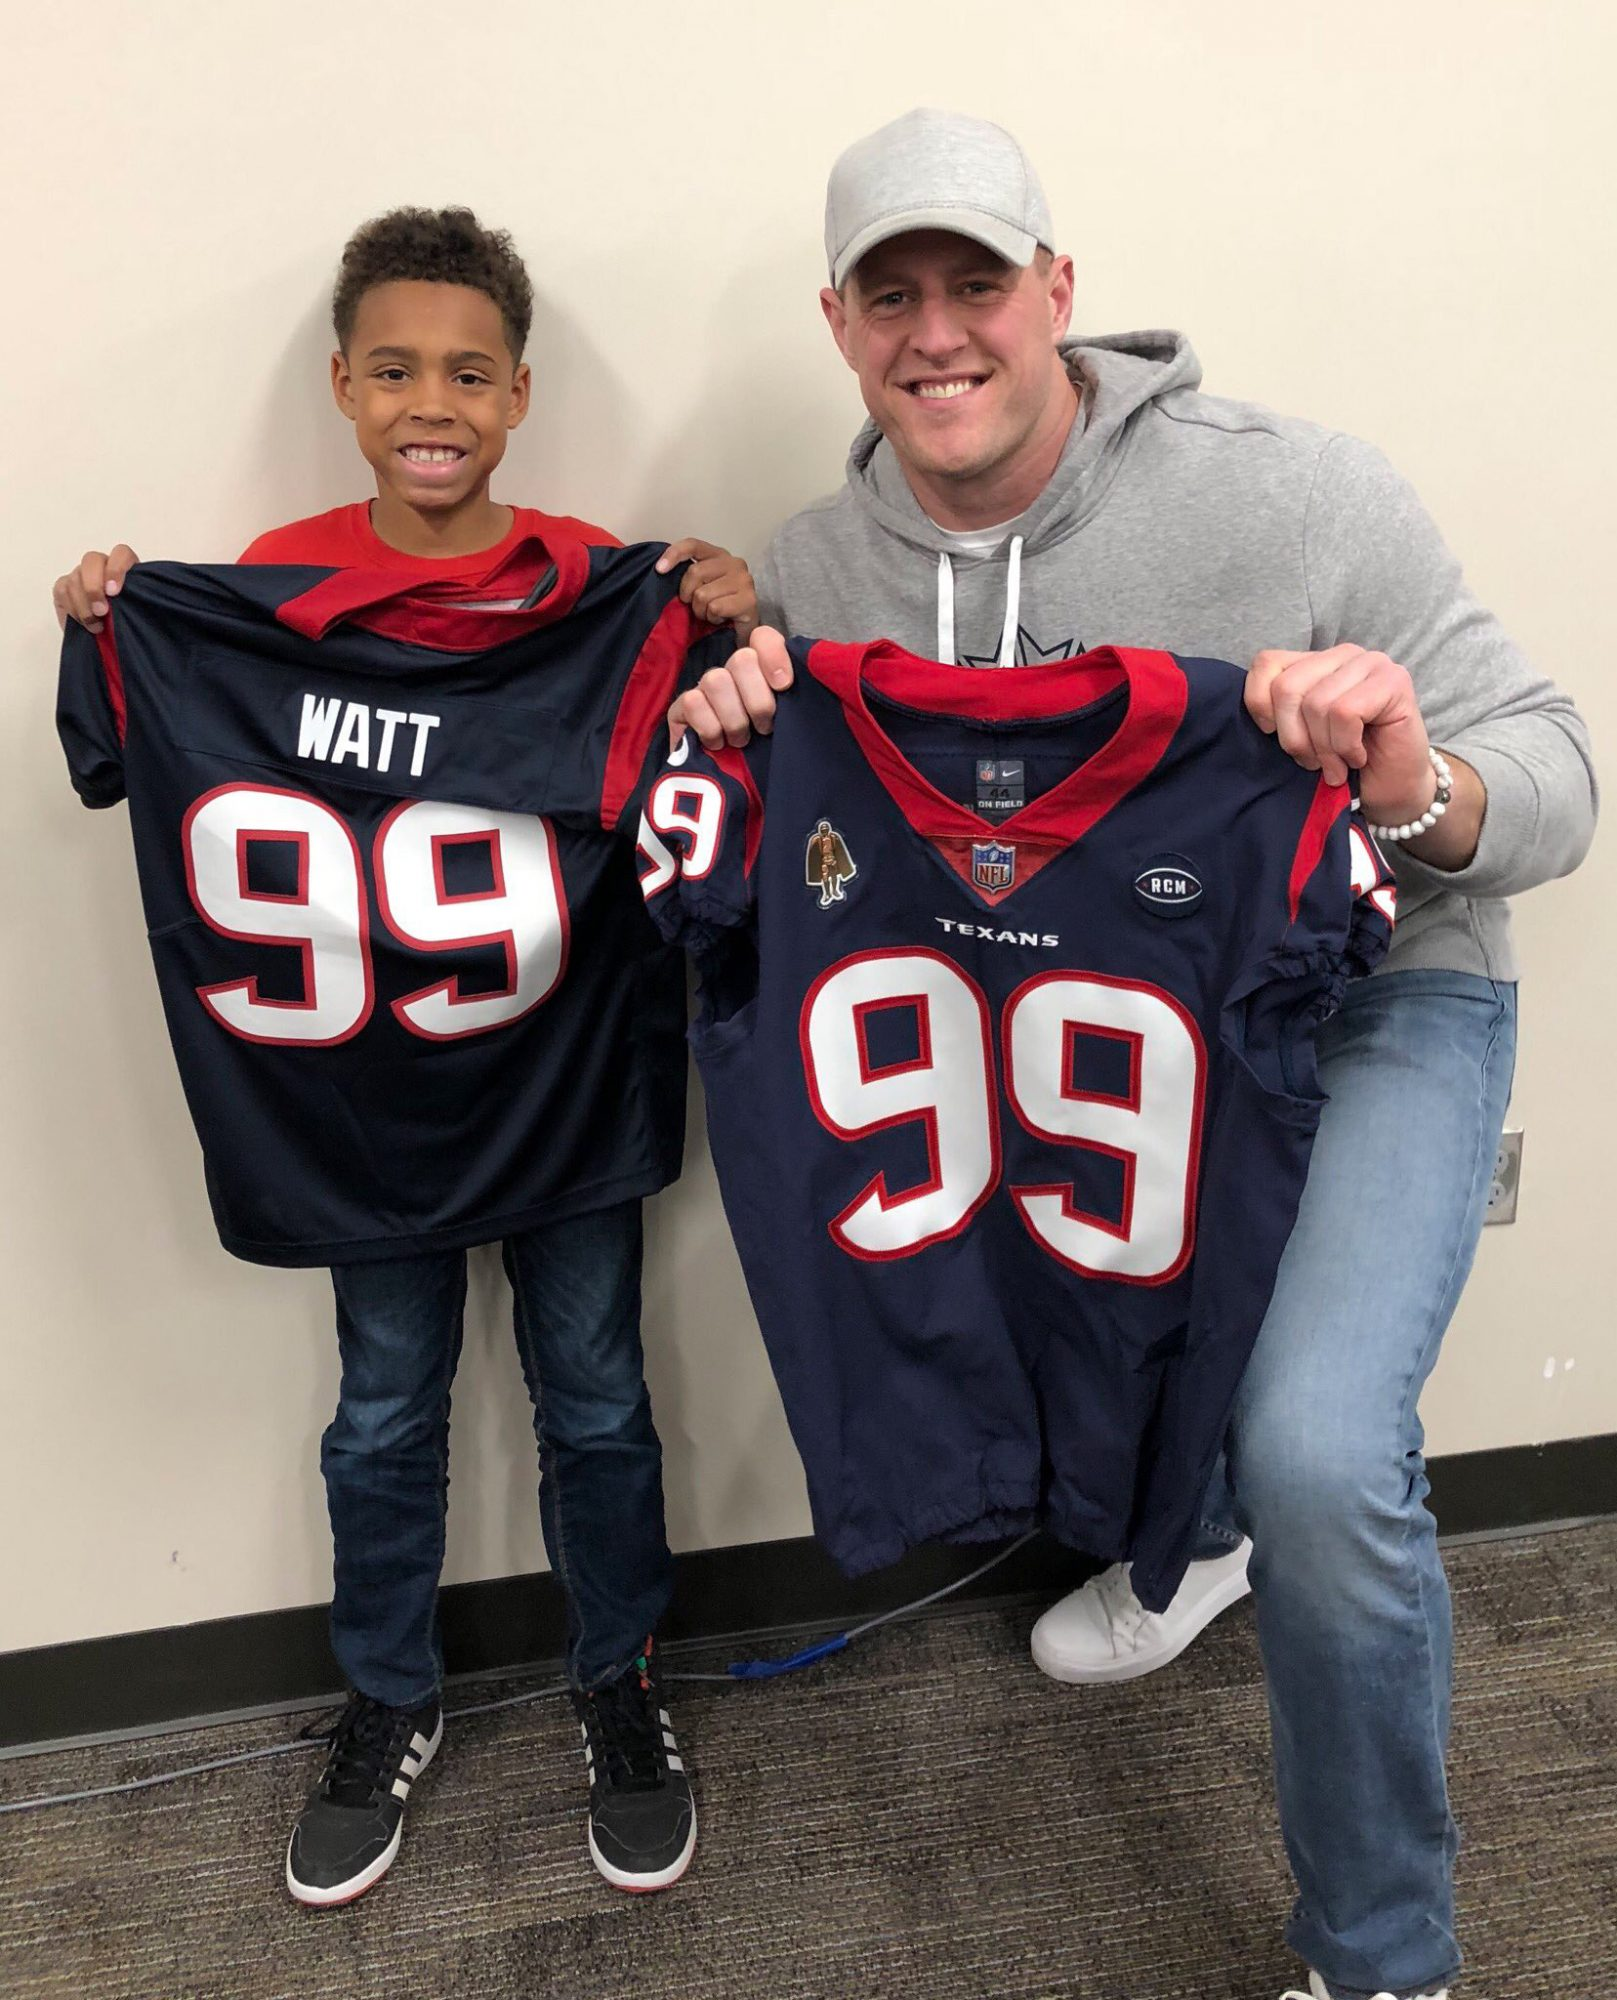 JJ Watt Follows Through on Promise to Give Young Fan His Jersey: 'I Have a New Friend' jj-watt-1